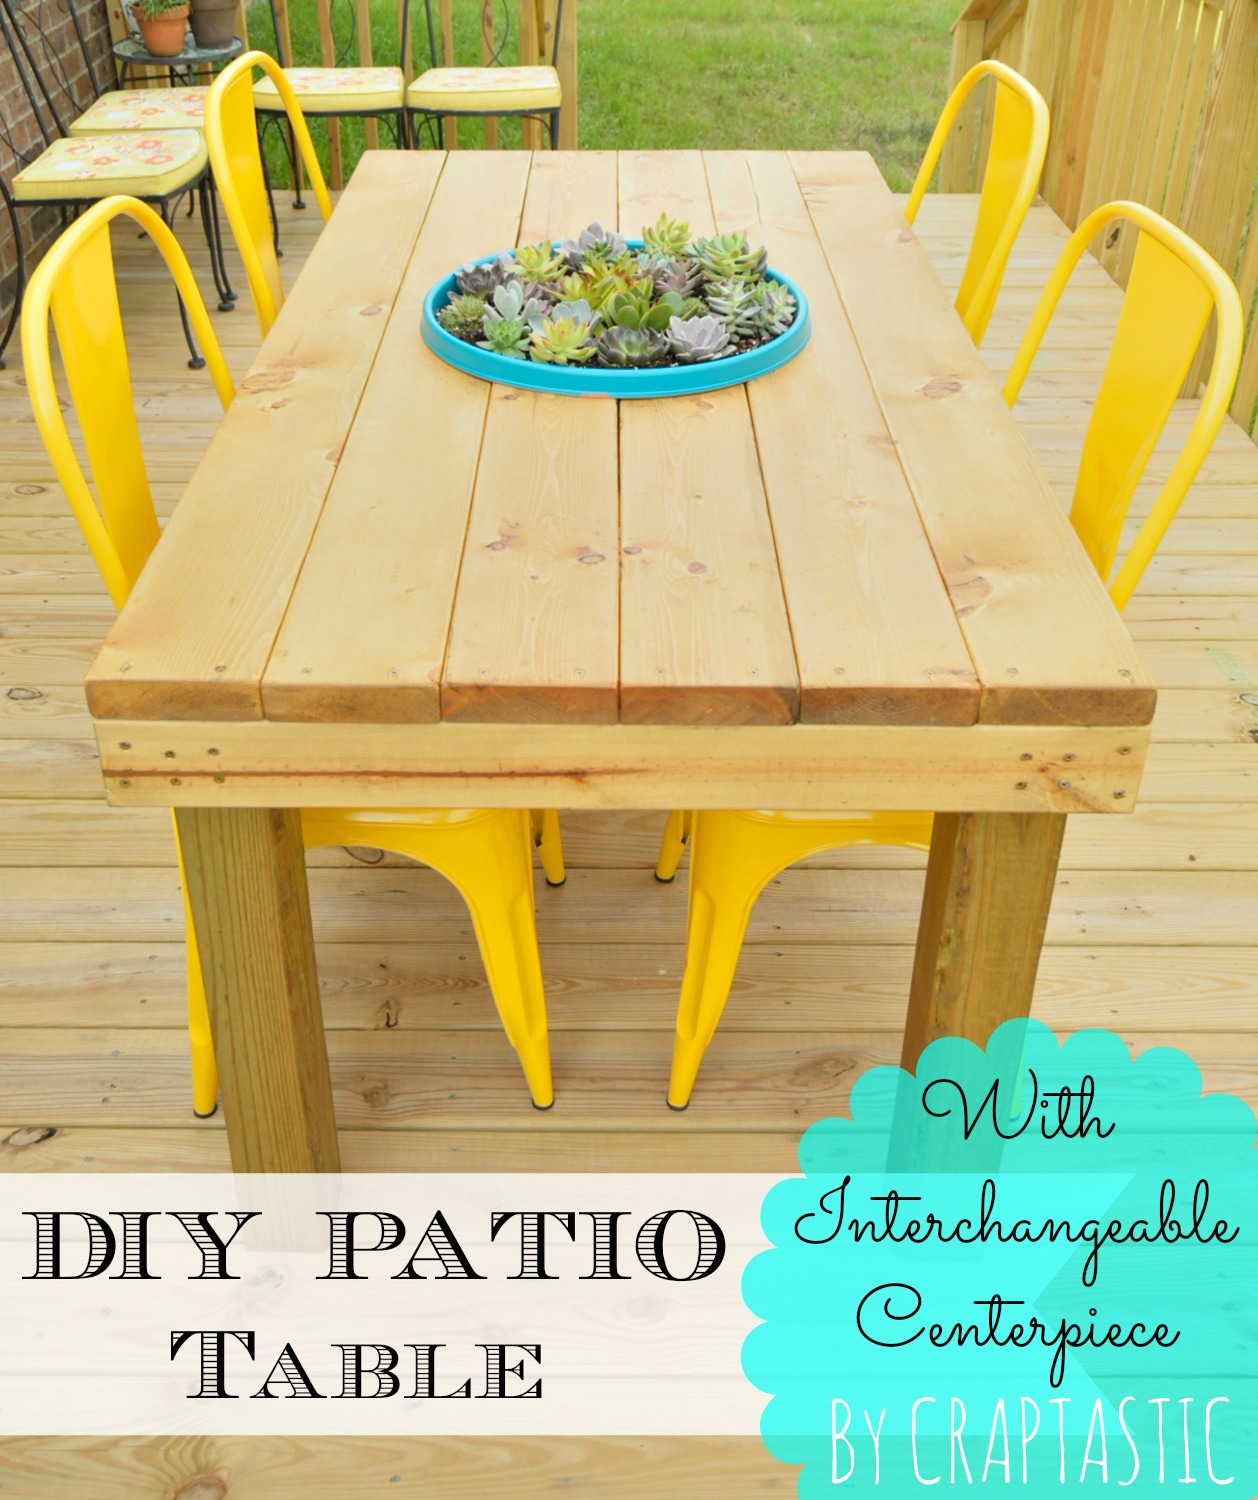 Craptastic diy patio table with interchangeable centerpiece for Patio table centerpiece ideas